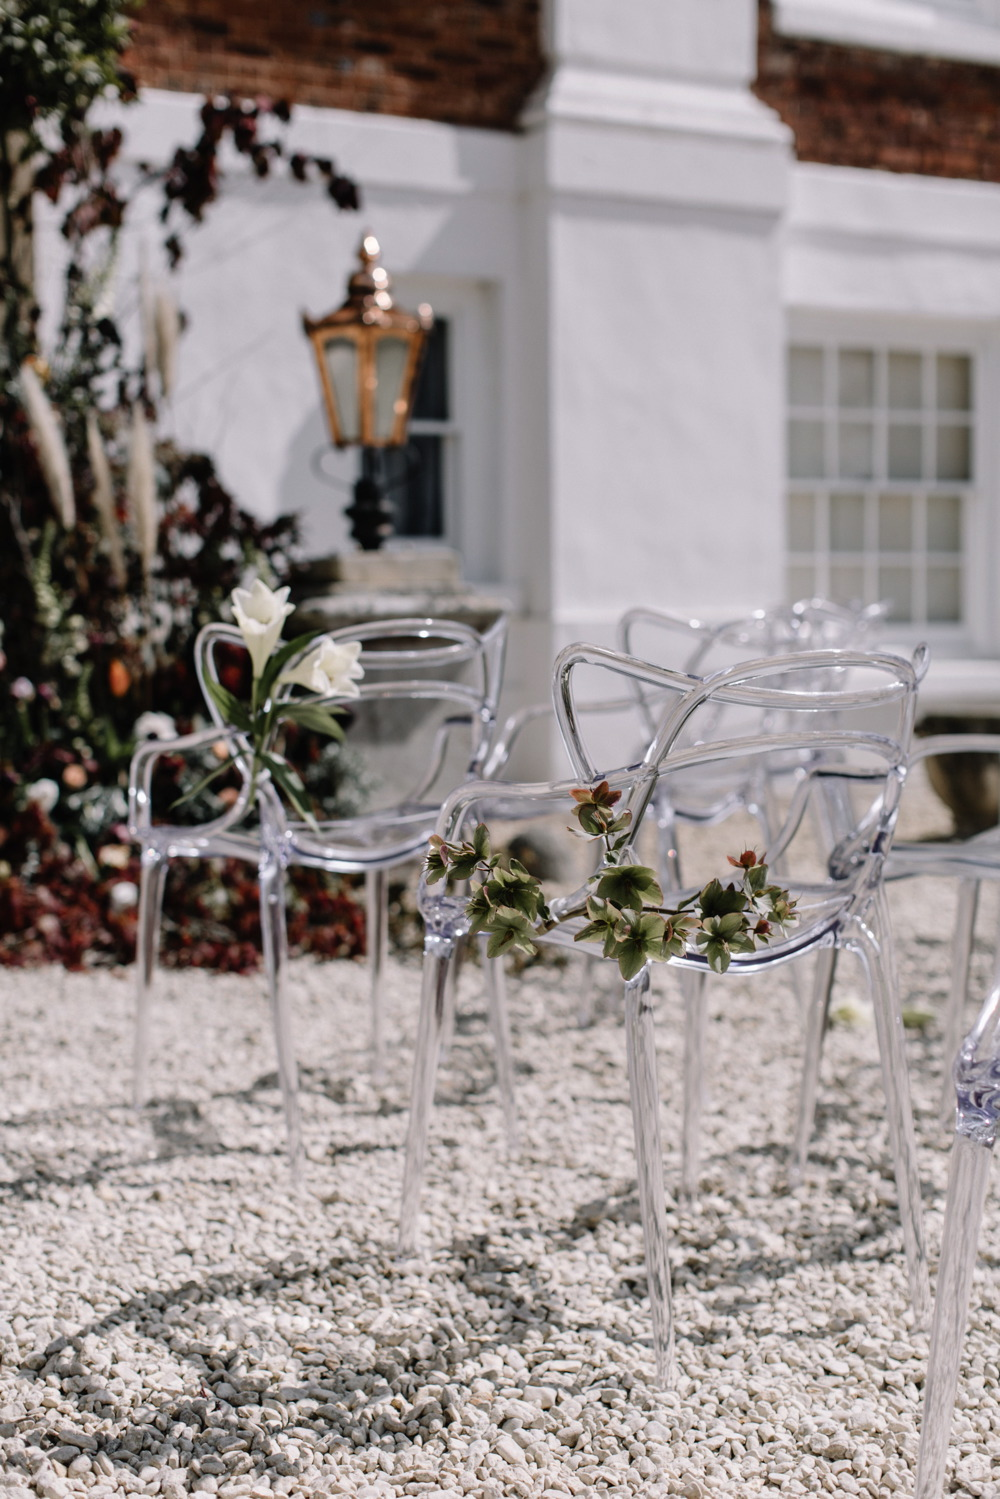 Ghost chairs by wed head outdoor wedding ceremony at pynes house devon image by